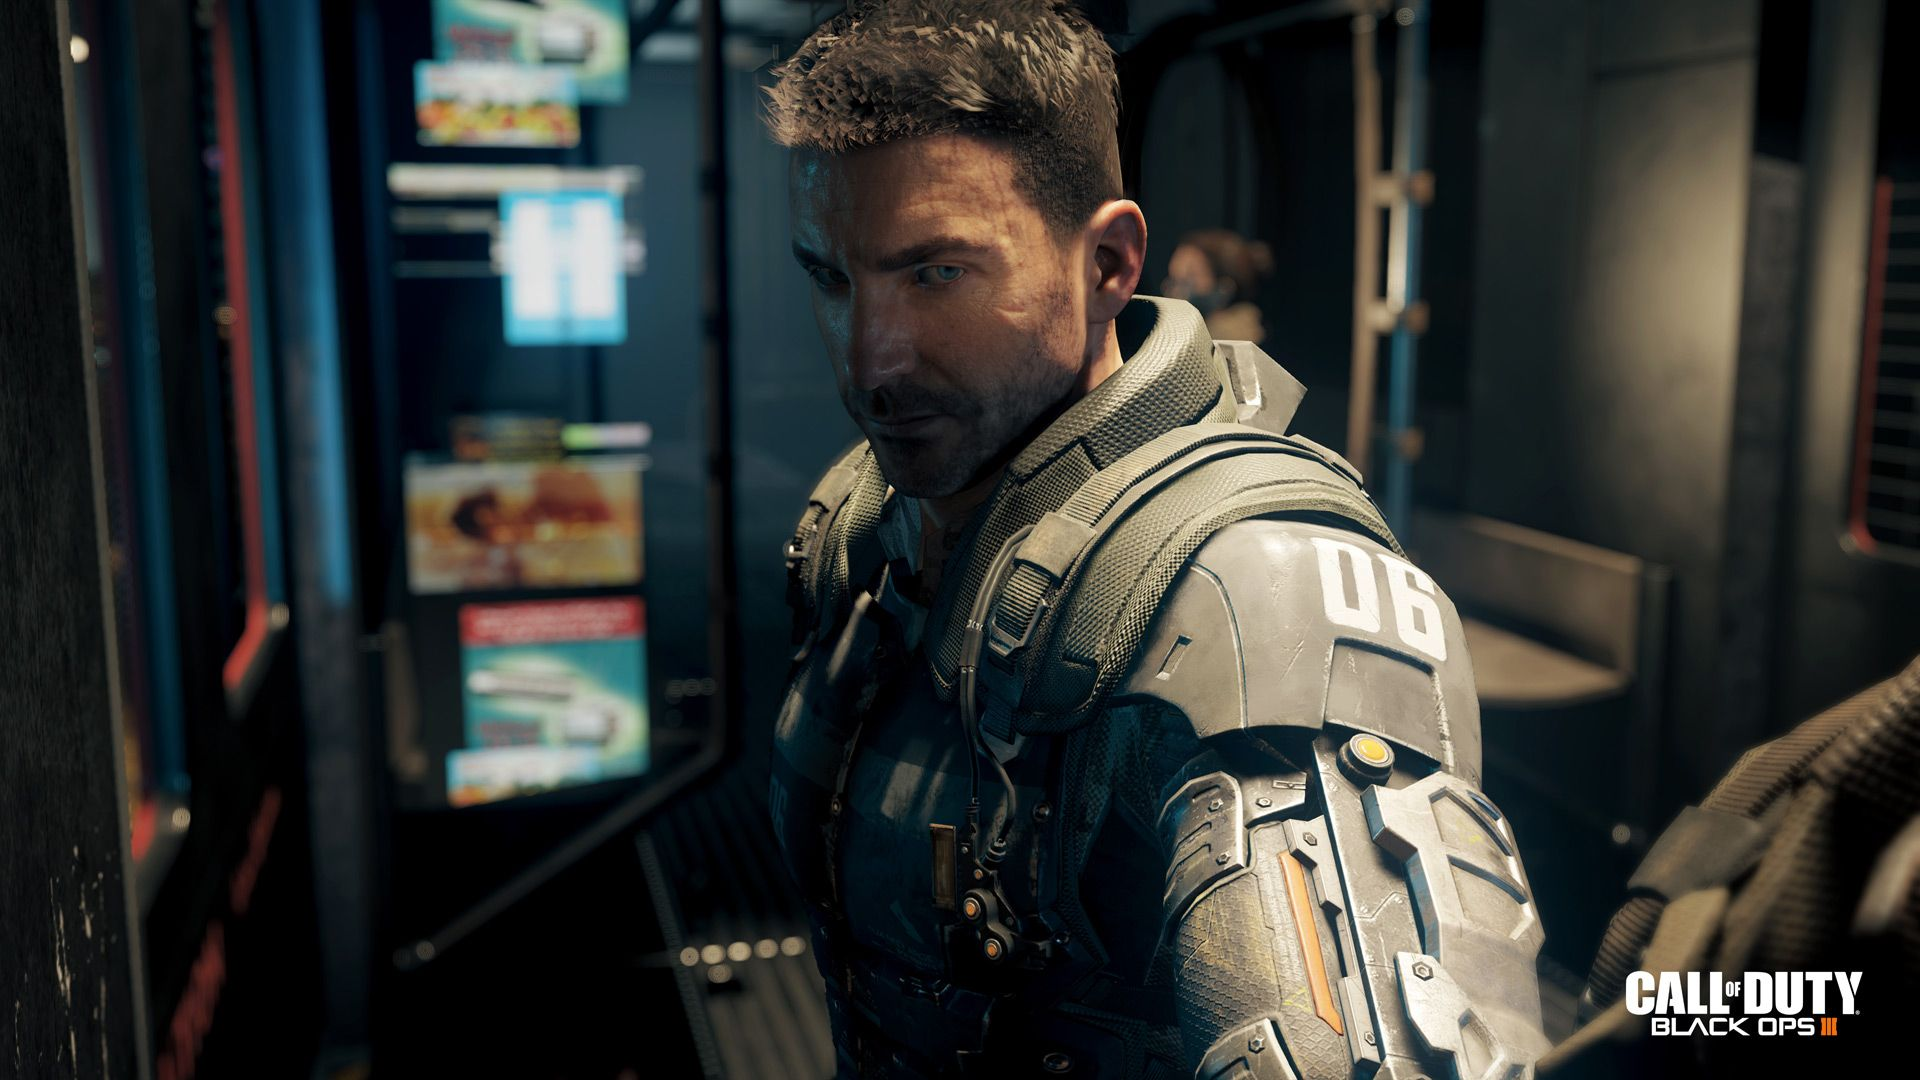 Call Of Duty Black Ops 3 Gameplay Launch Trailer Features